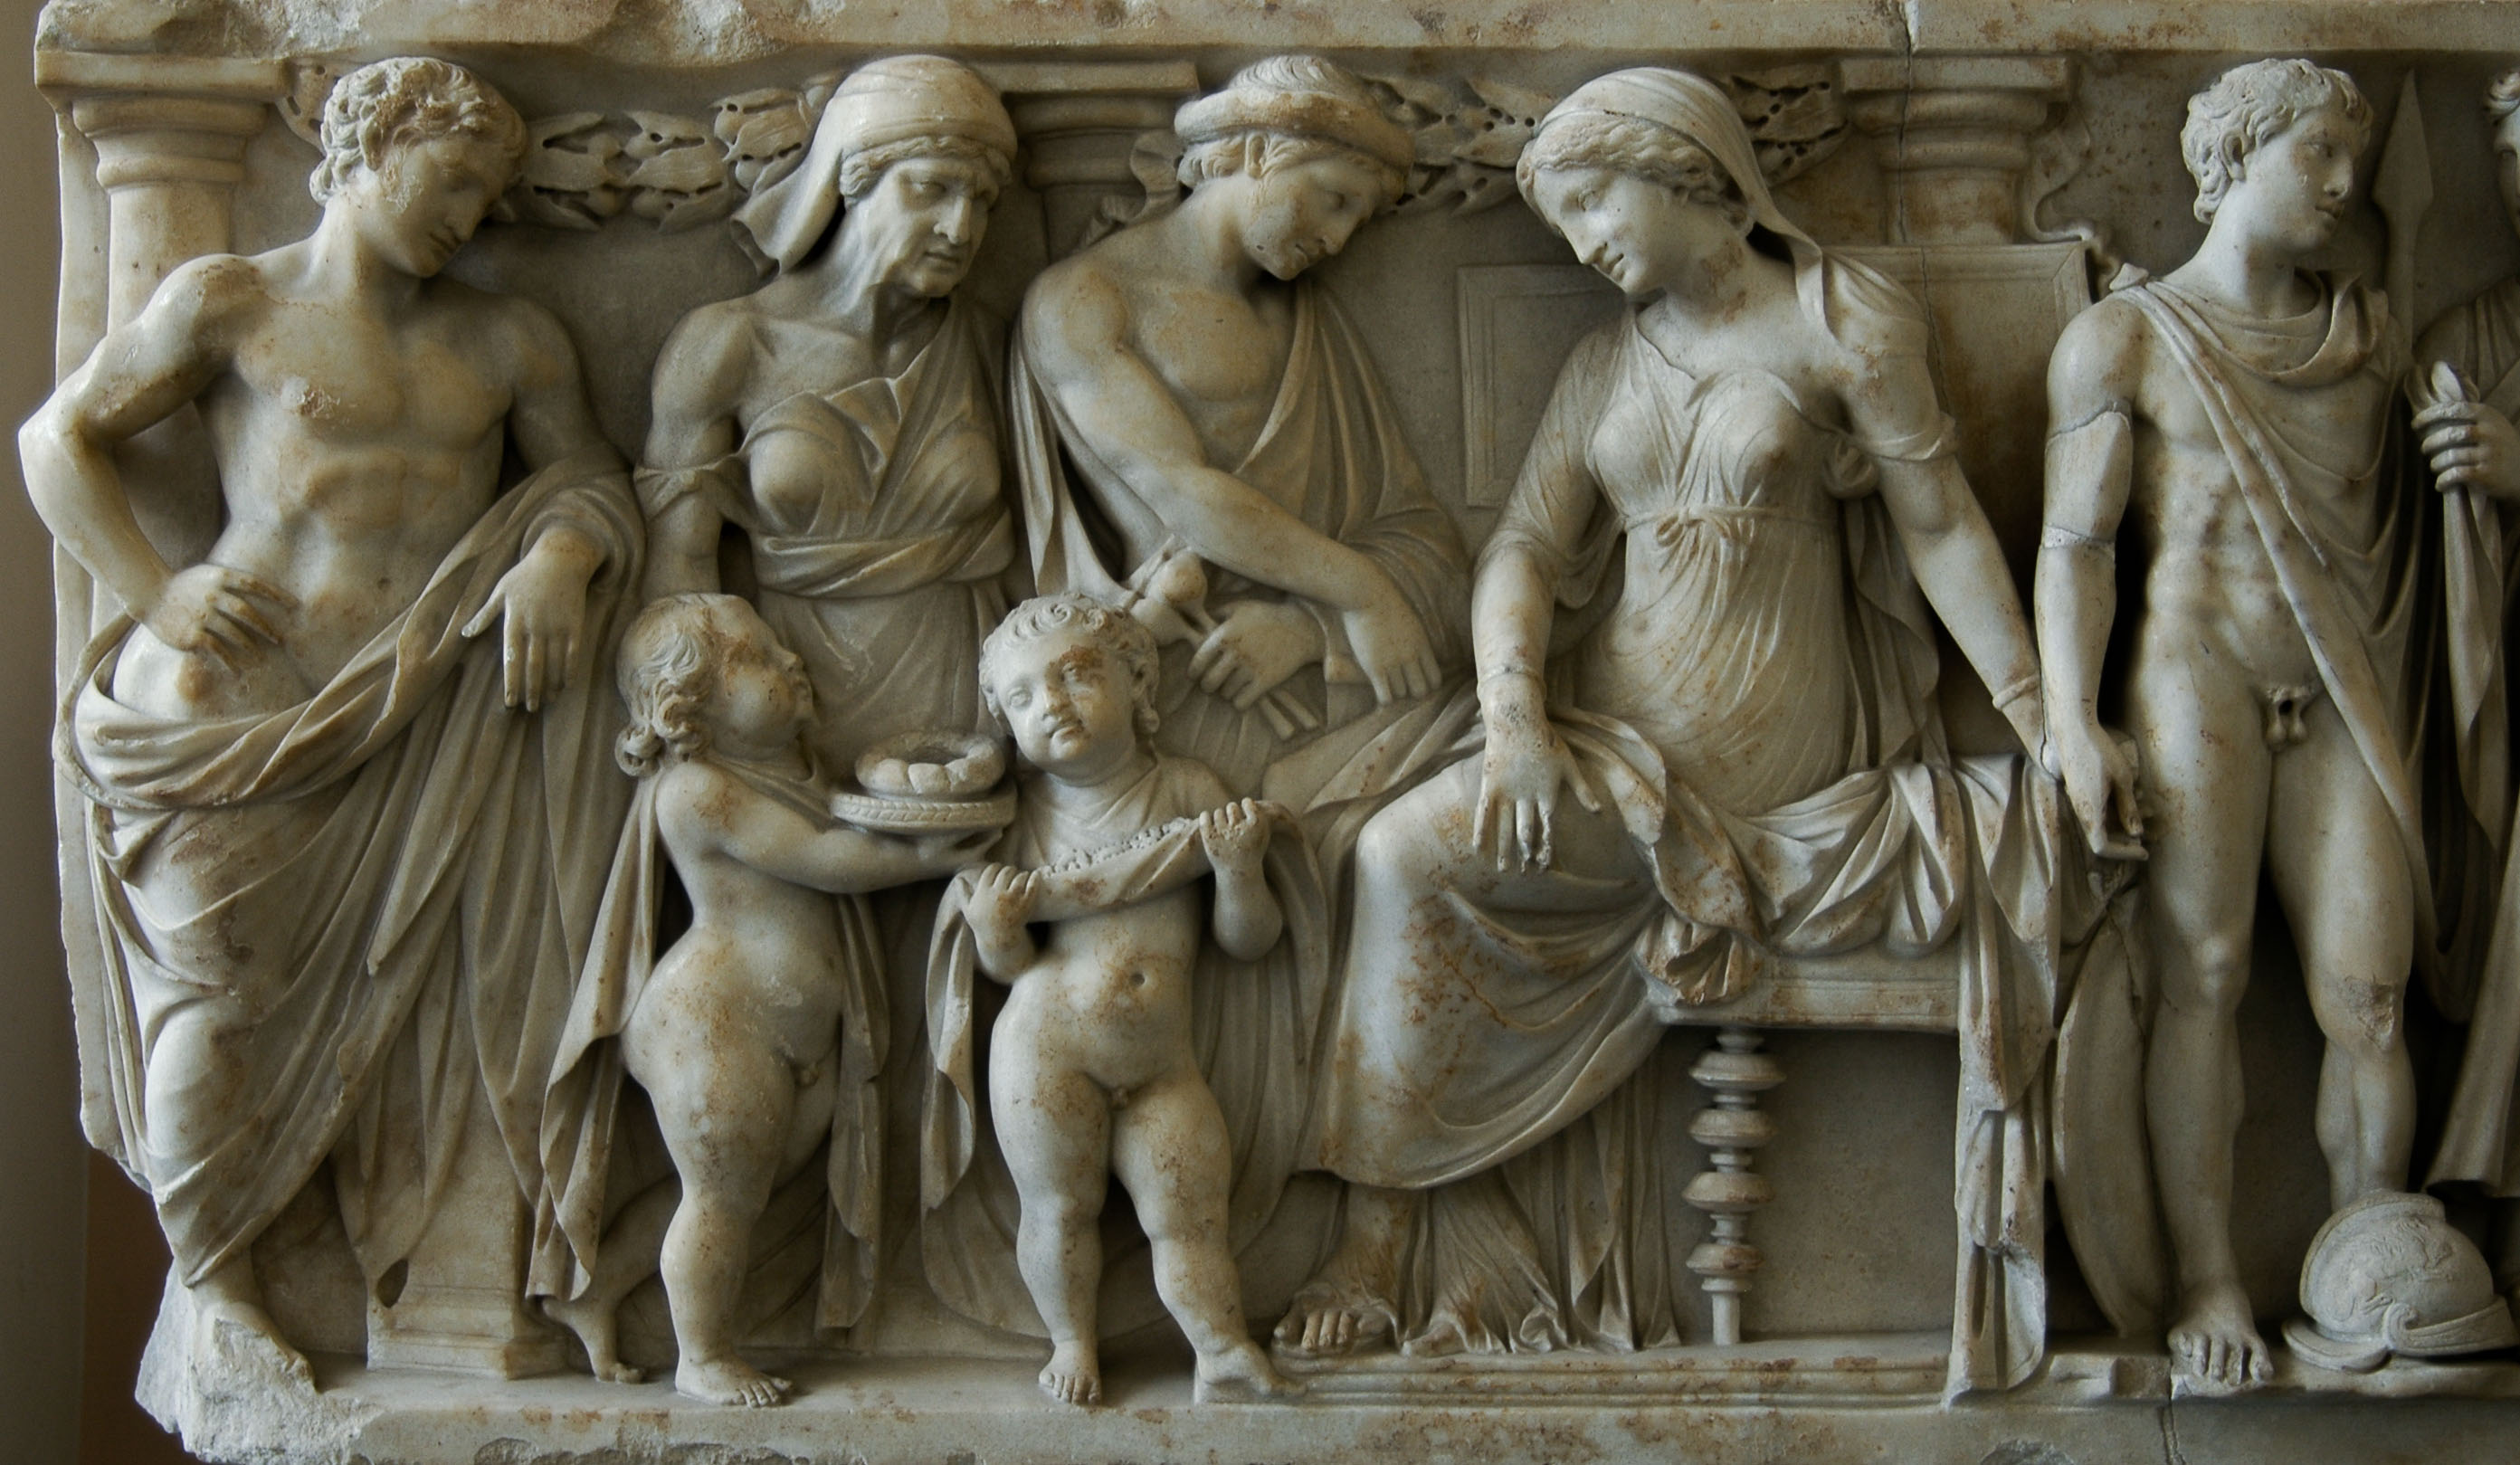 Scenes of the myth of Medea. Front panel of sarcophagus, left part. Greek marble. Mid-2nd cent. CE. Inv. No. Sk 843 b. Berlin, State Museums, Pergamon Museum